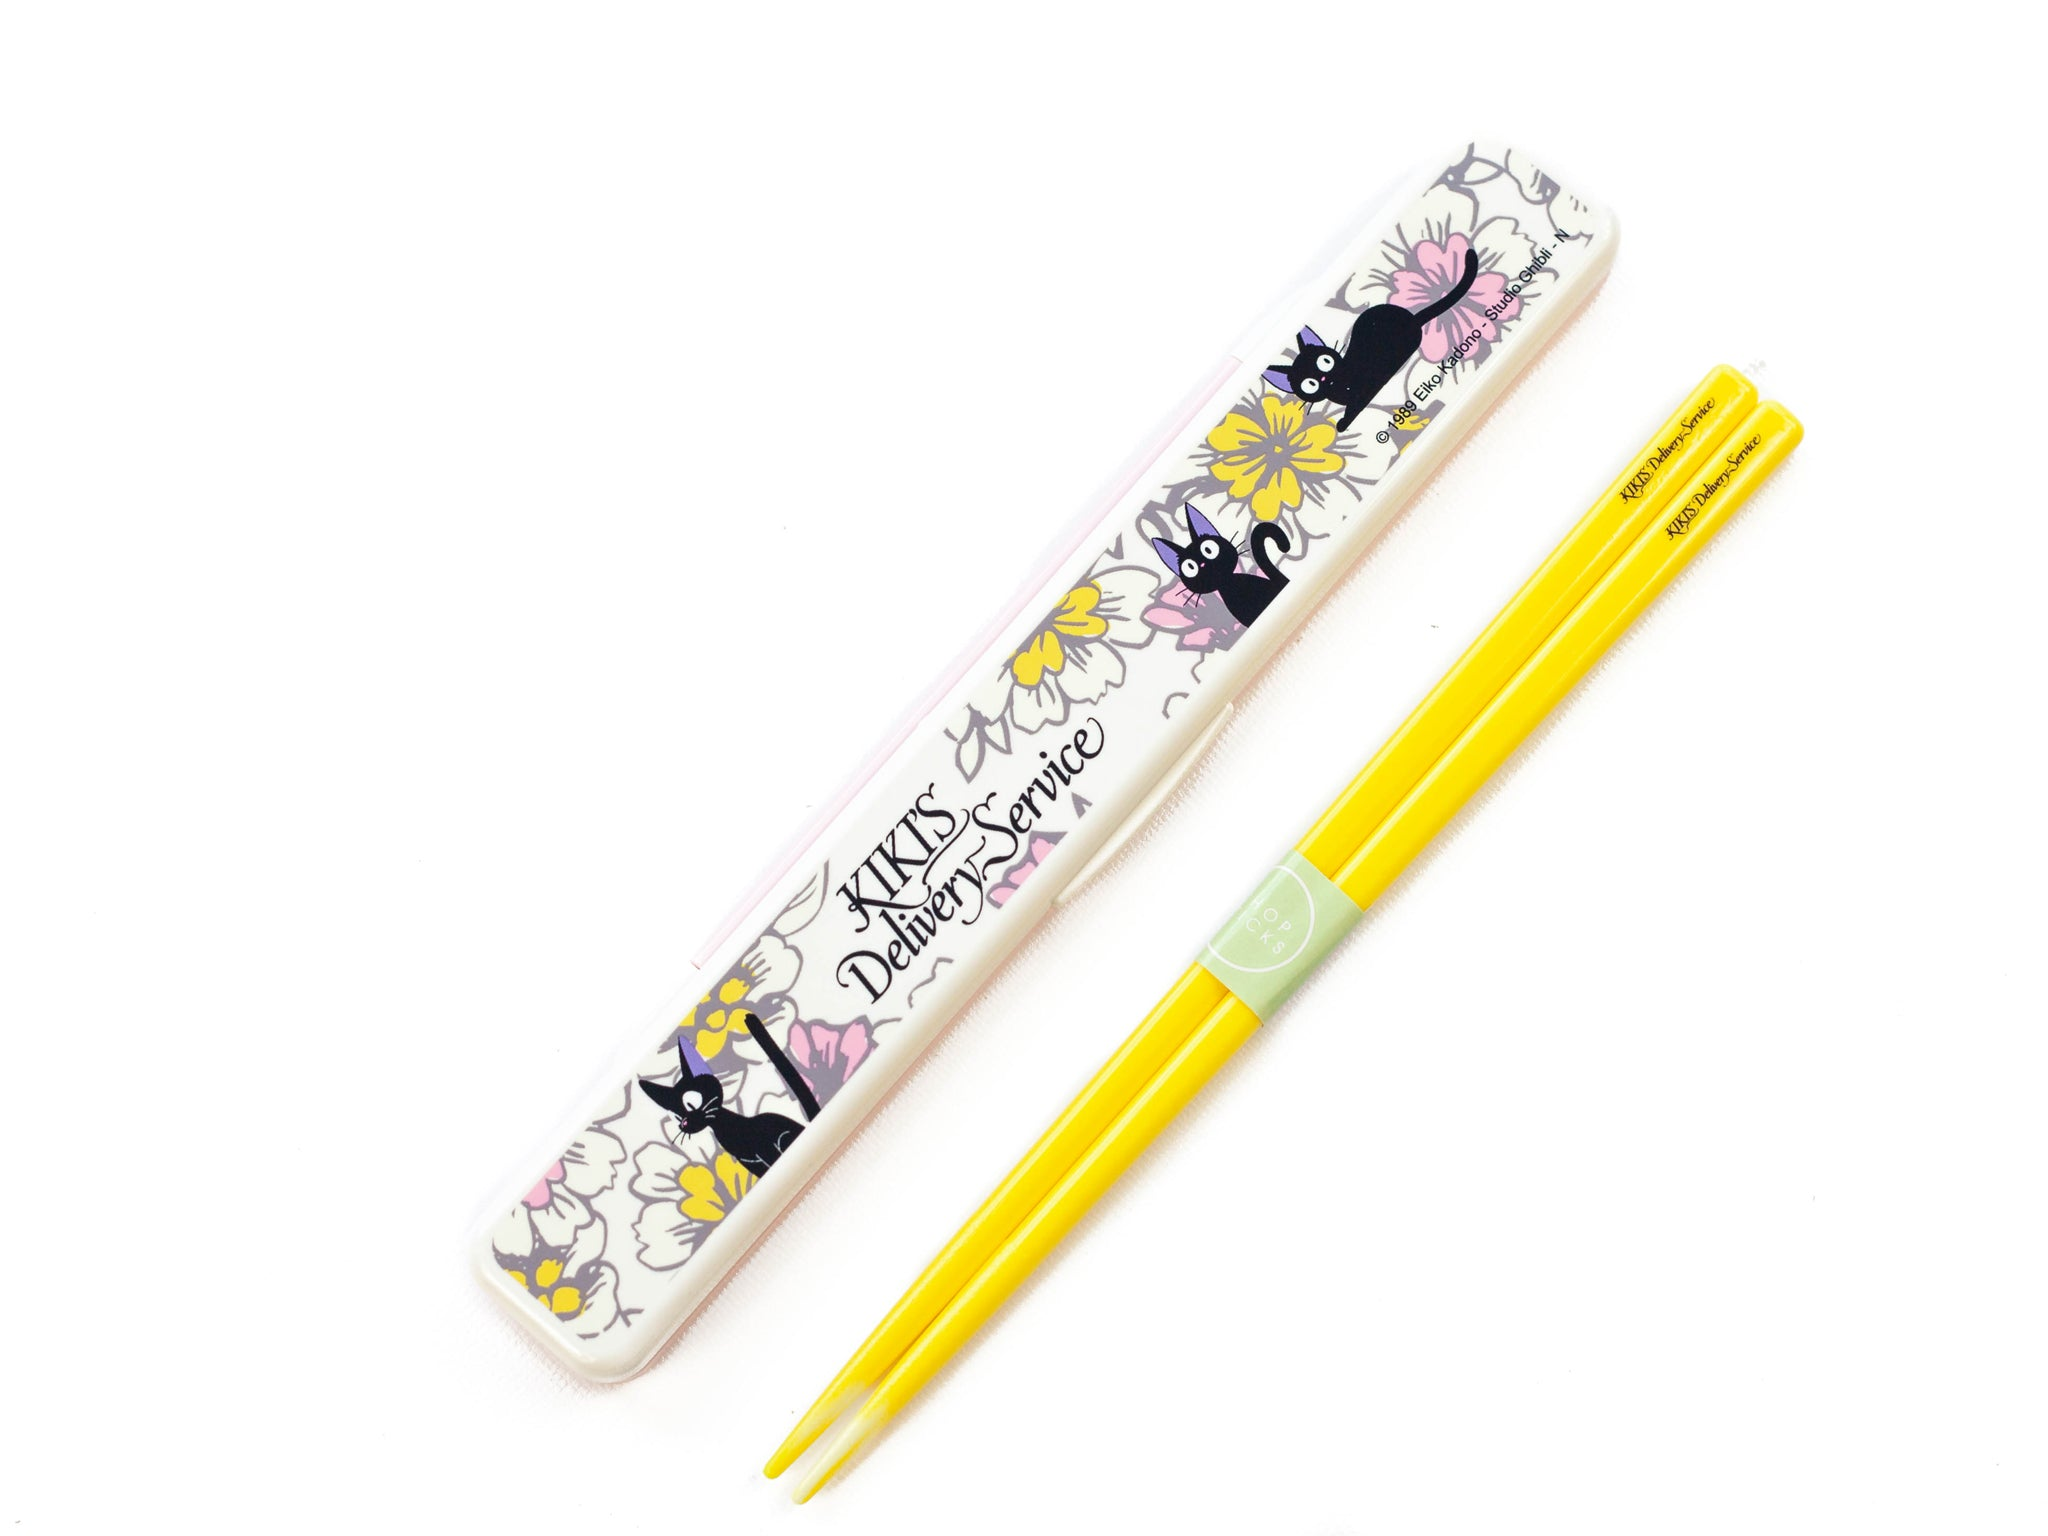 Jiji Elegance Chopsticks Set by Skater - Bento&co Japanese Bento Lunch Boxes and Kitchenware Specialists